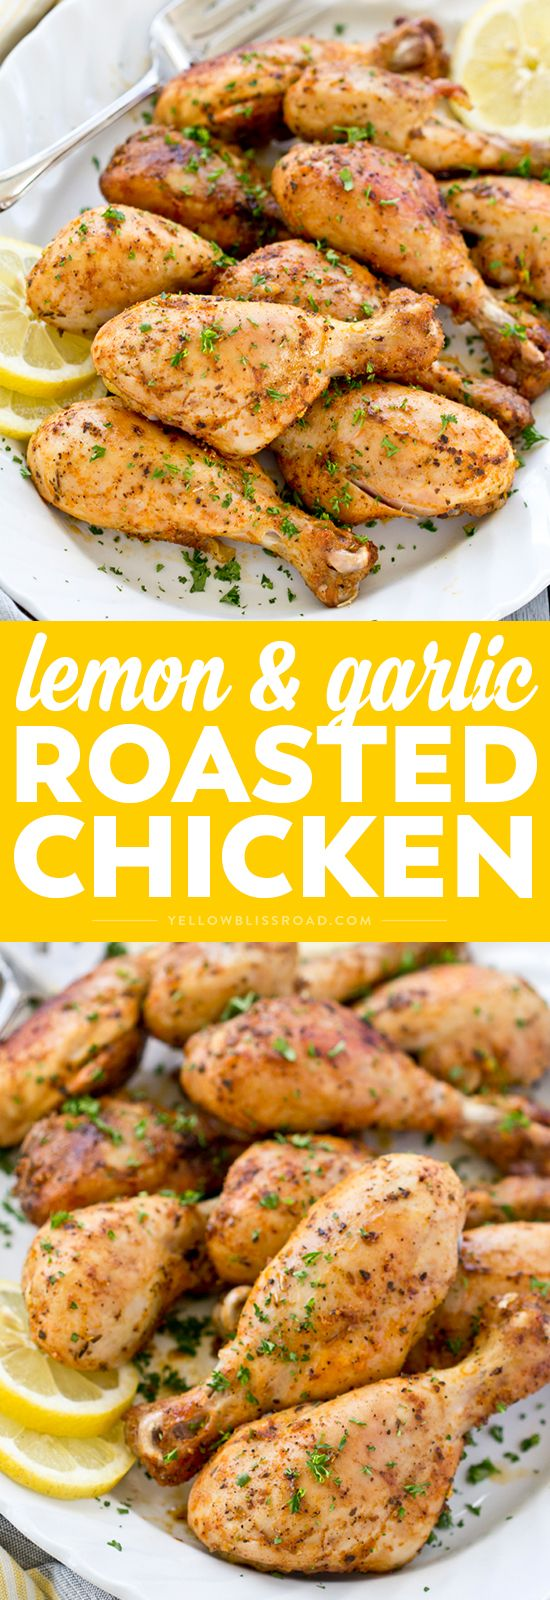 It doesn't get much easier than these savory Lemon Garlic Roasted Chicken Drumsticks. They are full of lemon and herb flavor and practically fall off the bone tender and juicy.